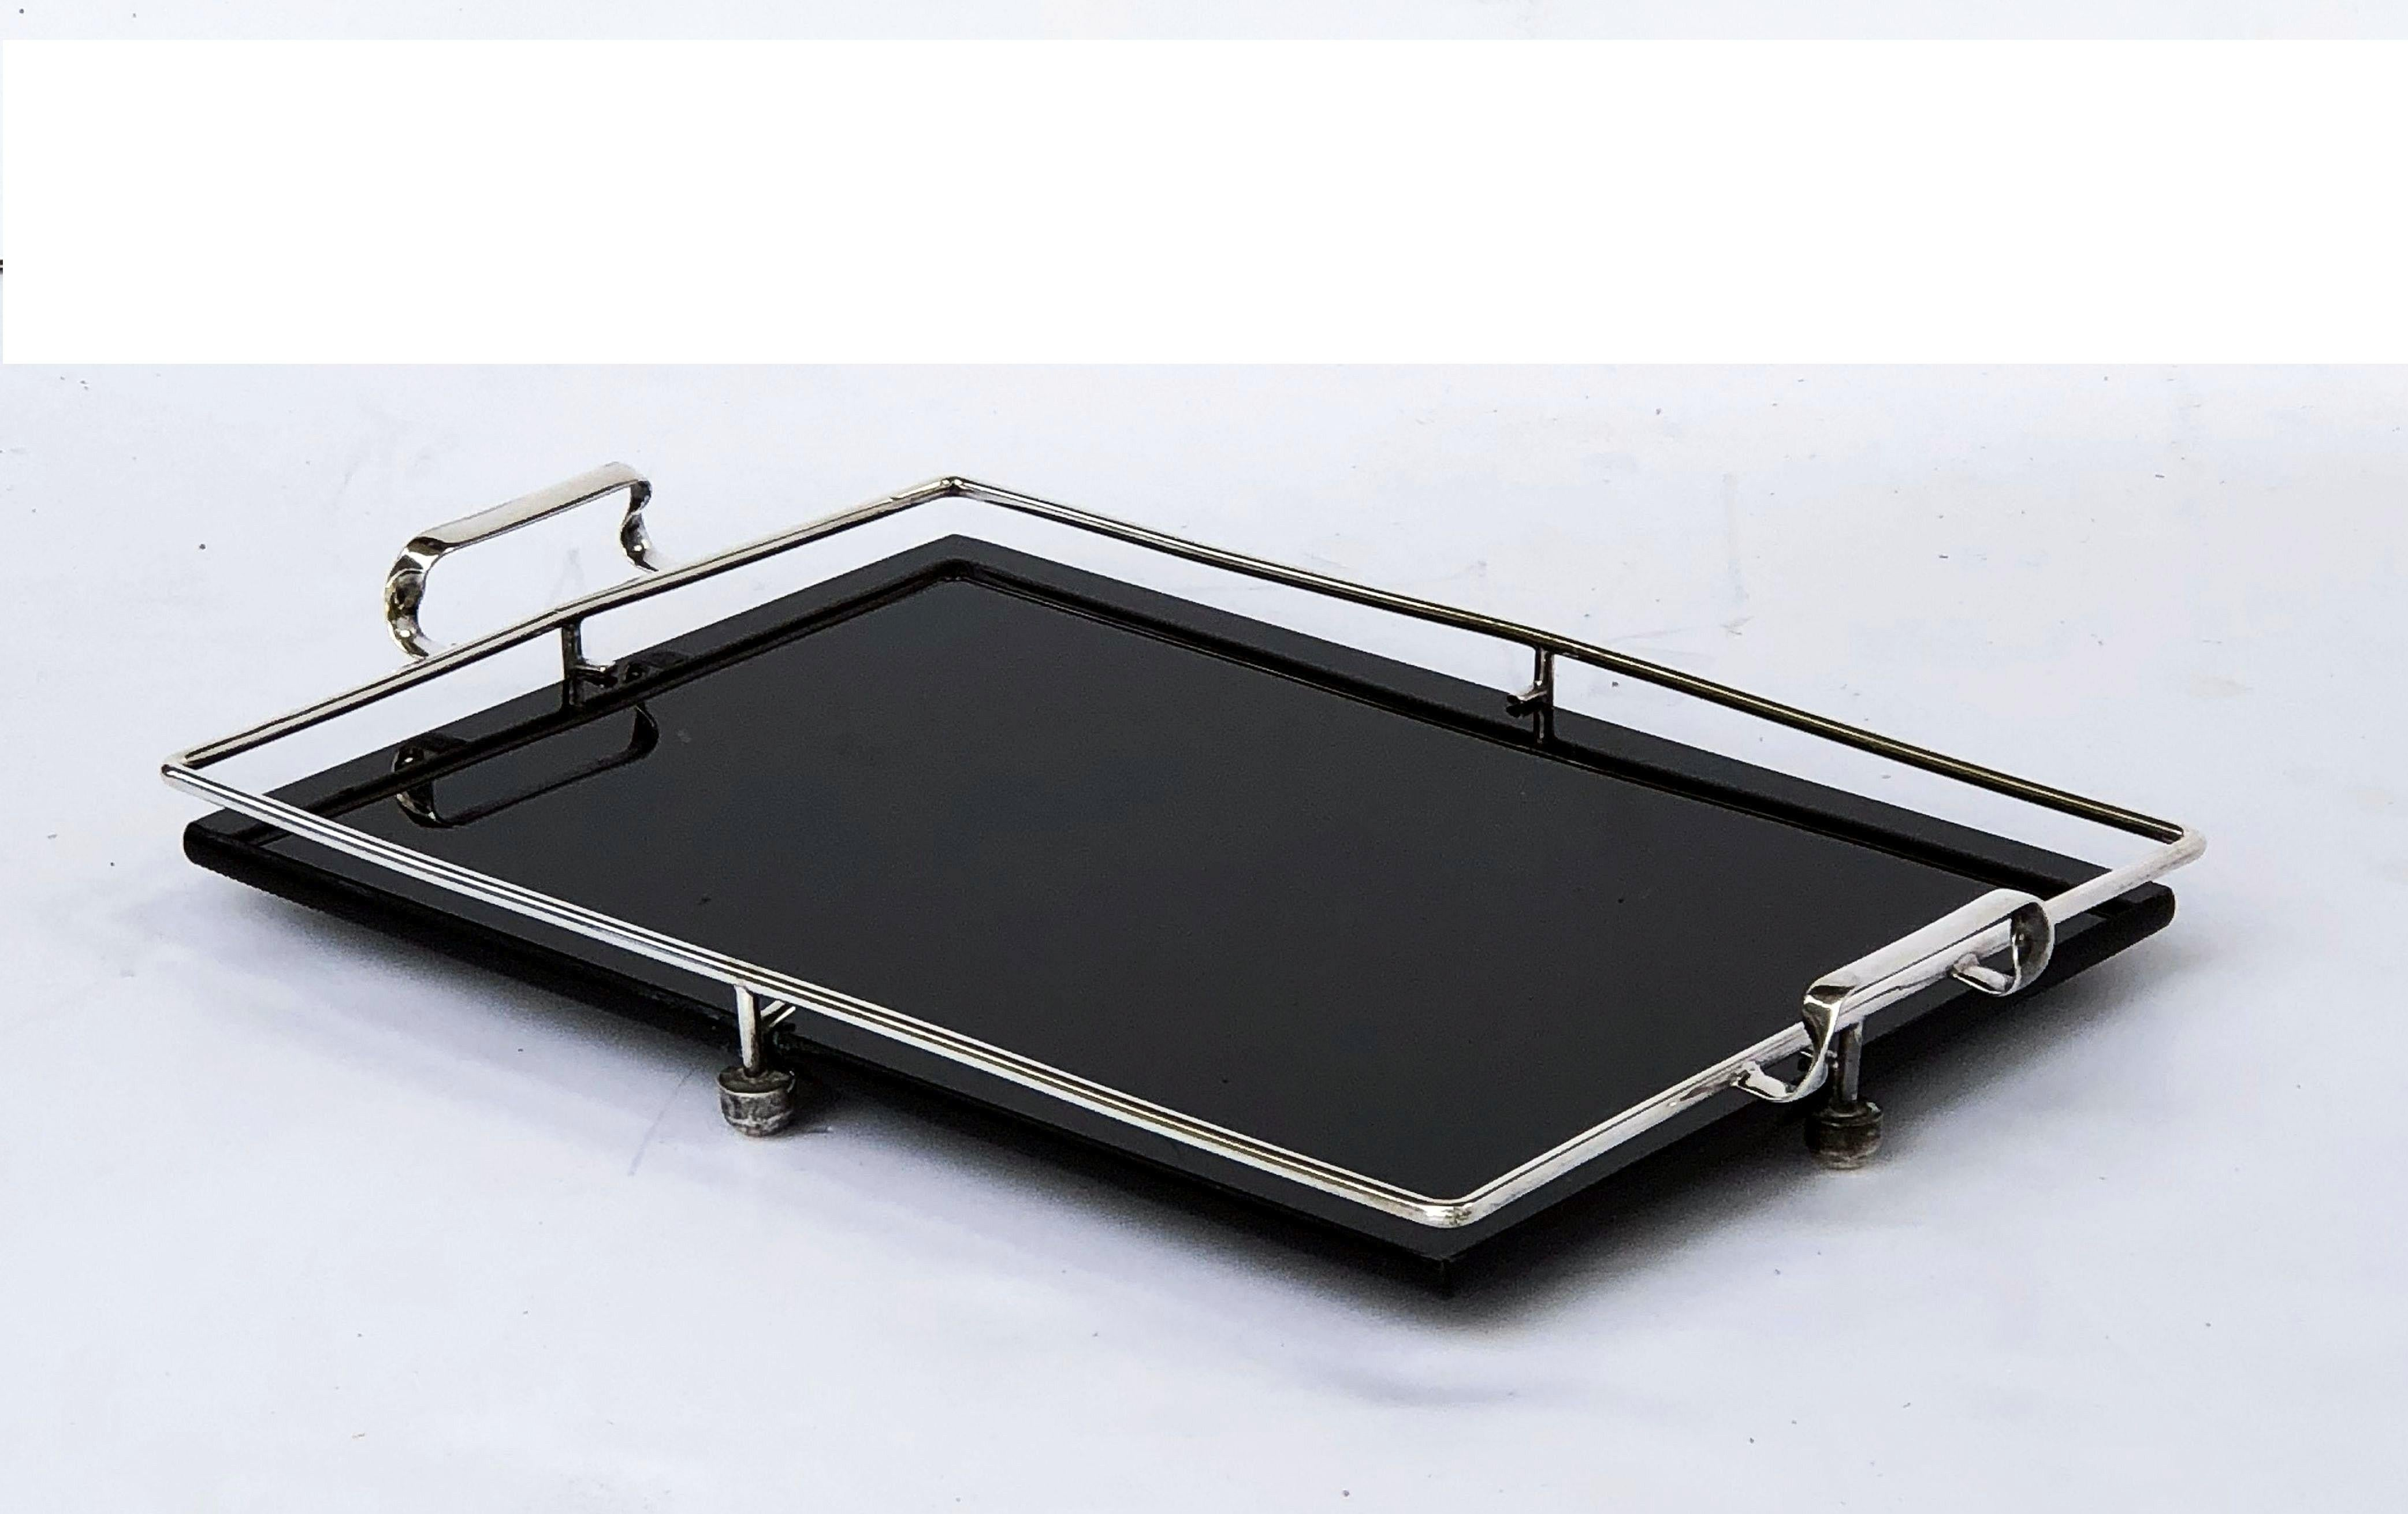 Black Serving Tray English Serving Tray Of Black Glass And Chrome From The Art Deco Period